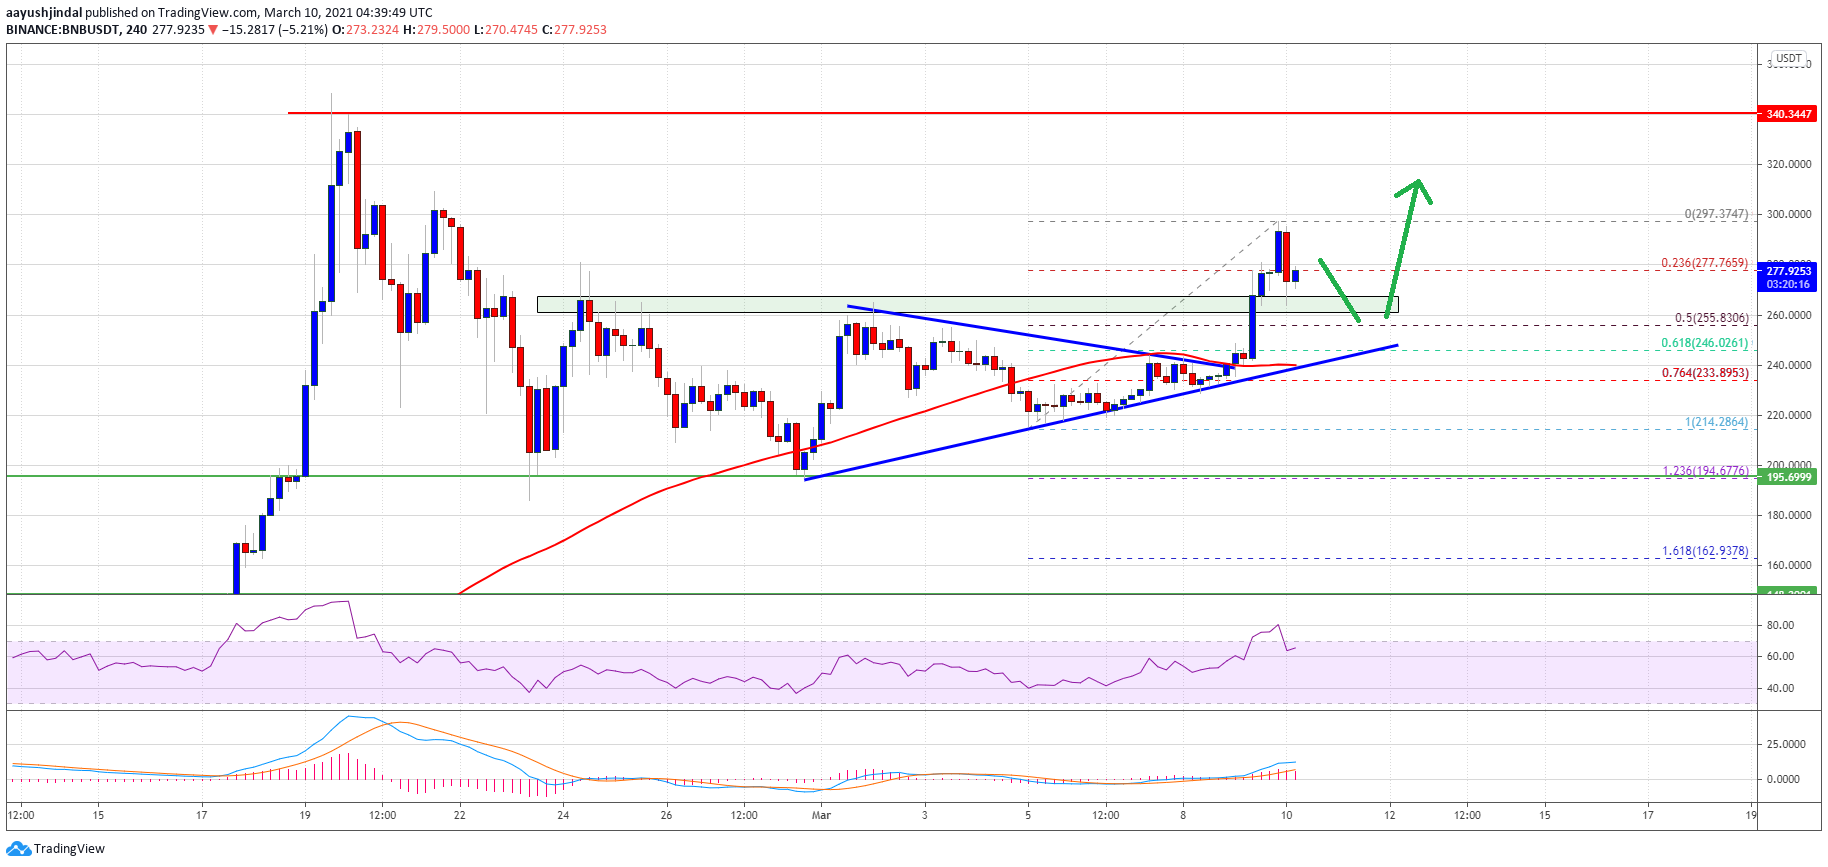 Charted: Binance Coin (BNB) Regains Strength, Bulls Aim Fresh Break above $300